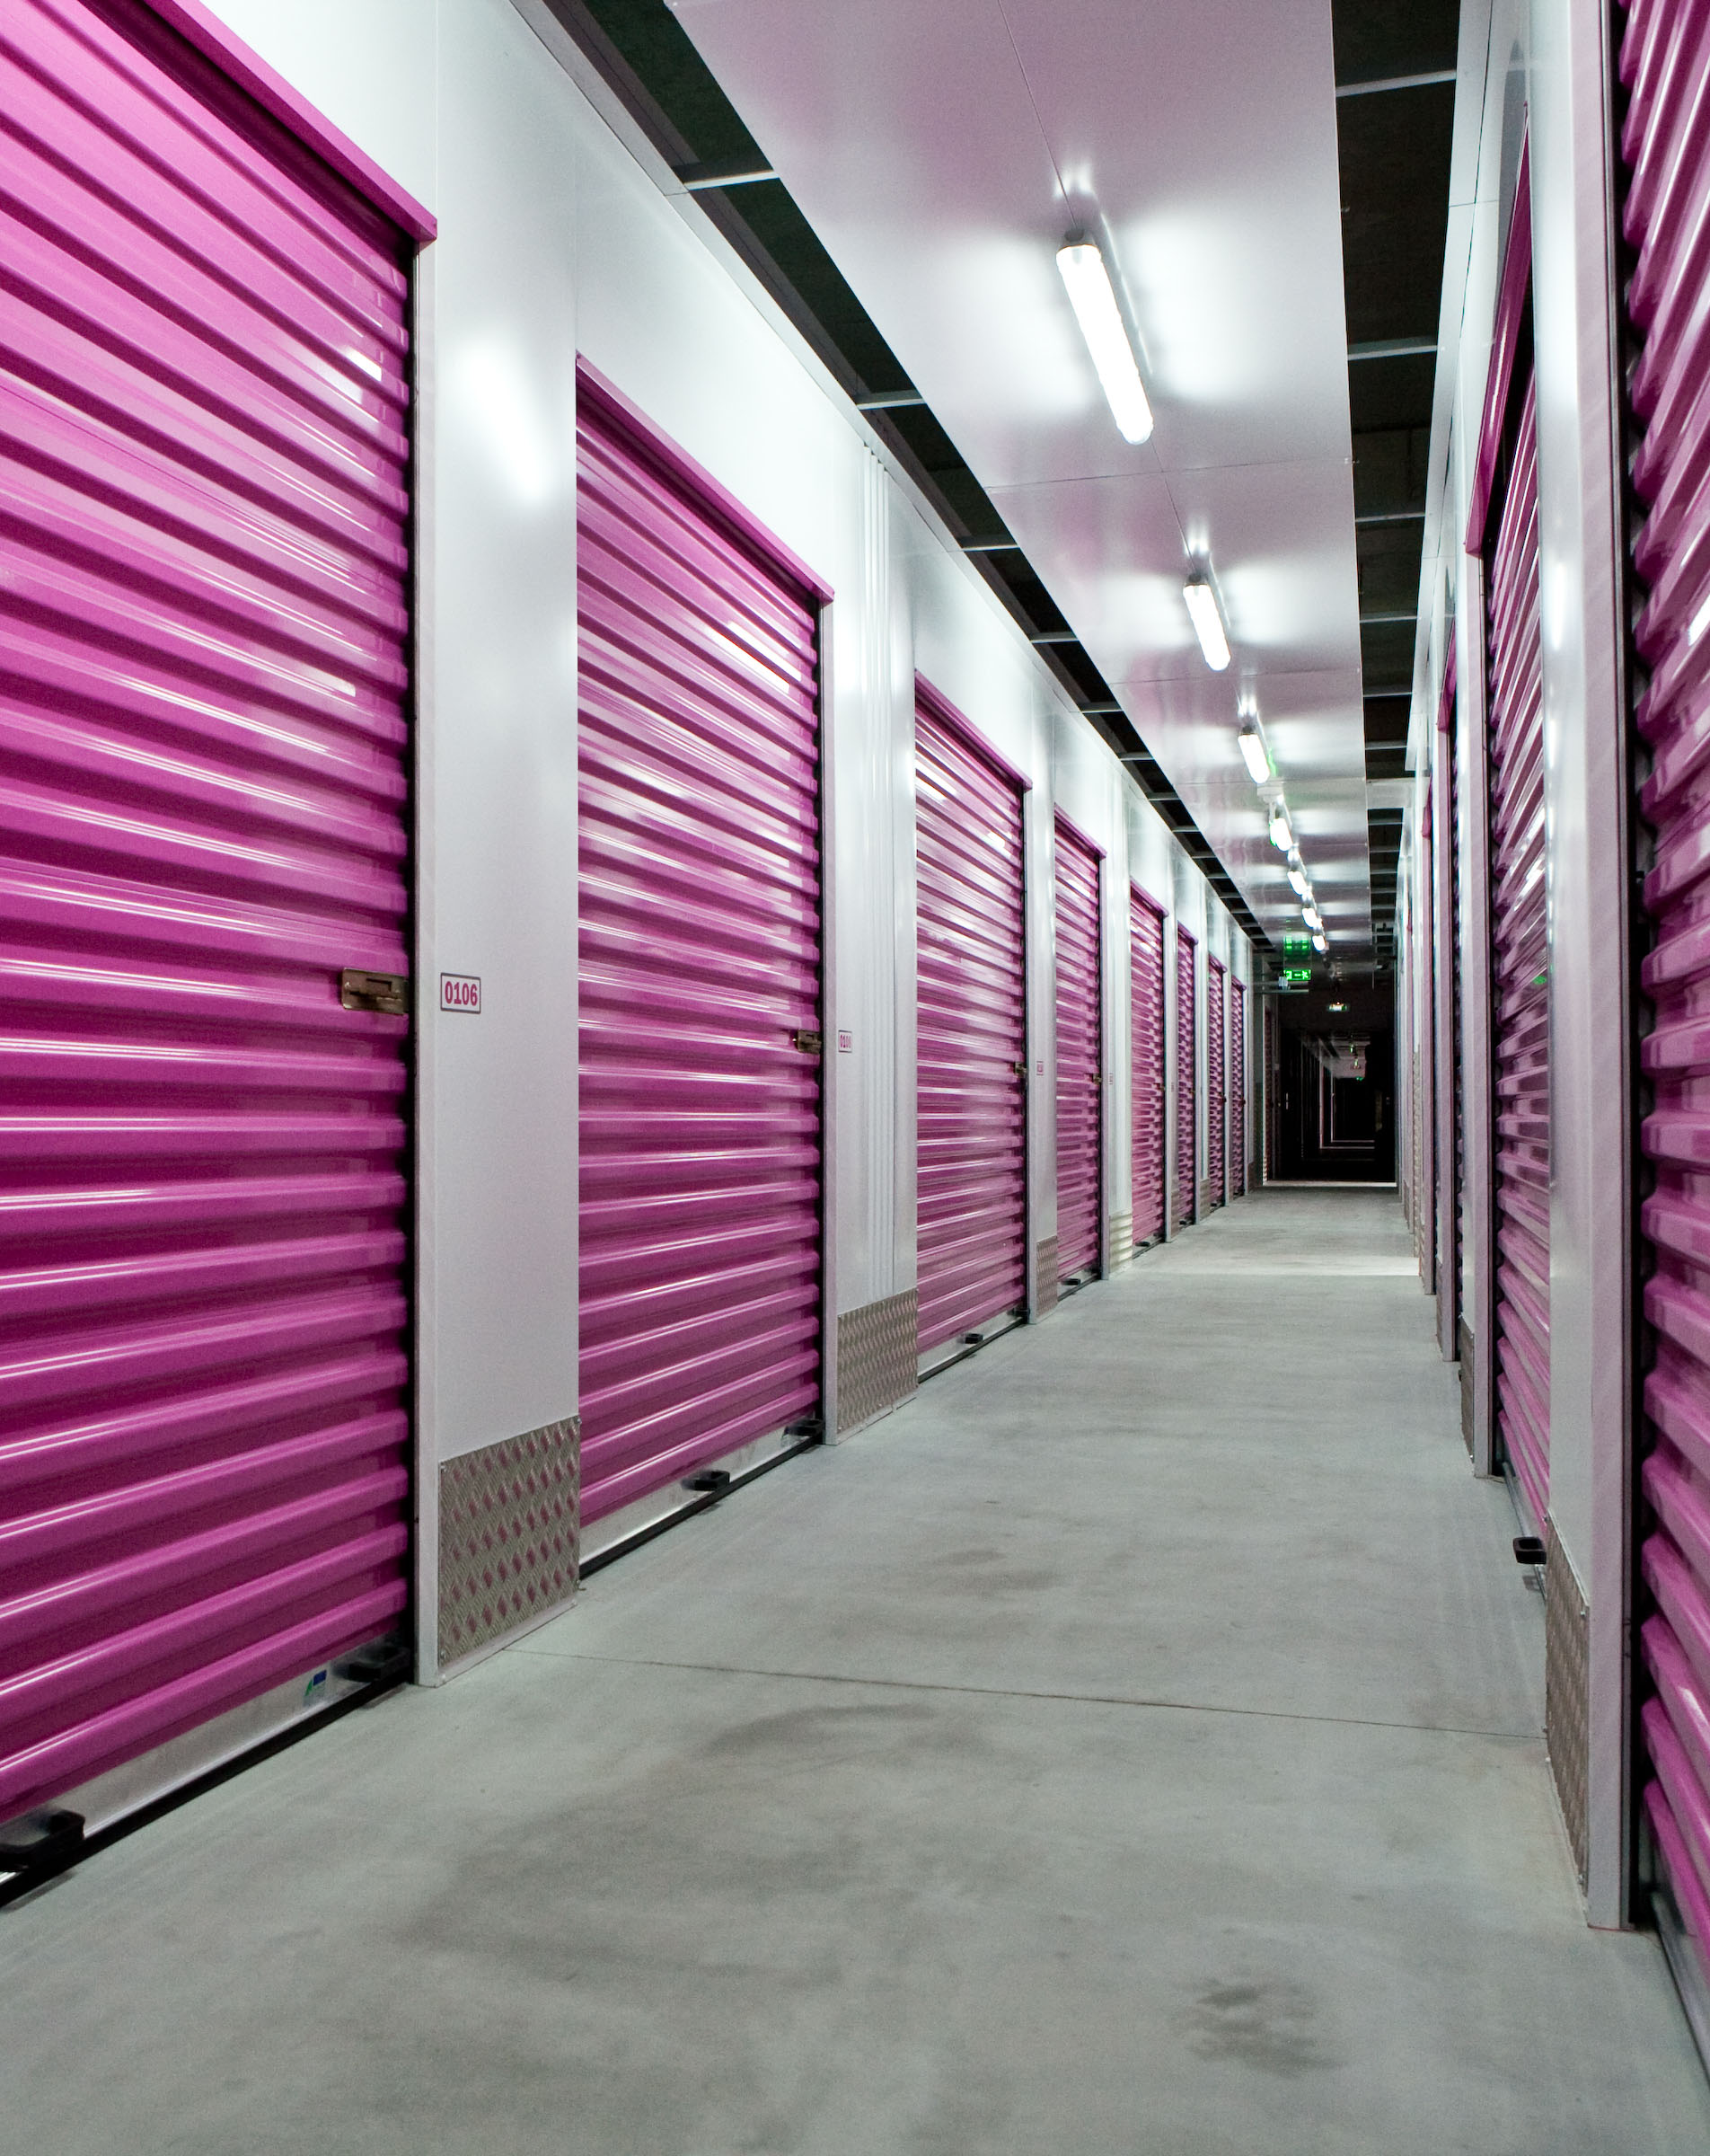 Self storage rental solutions